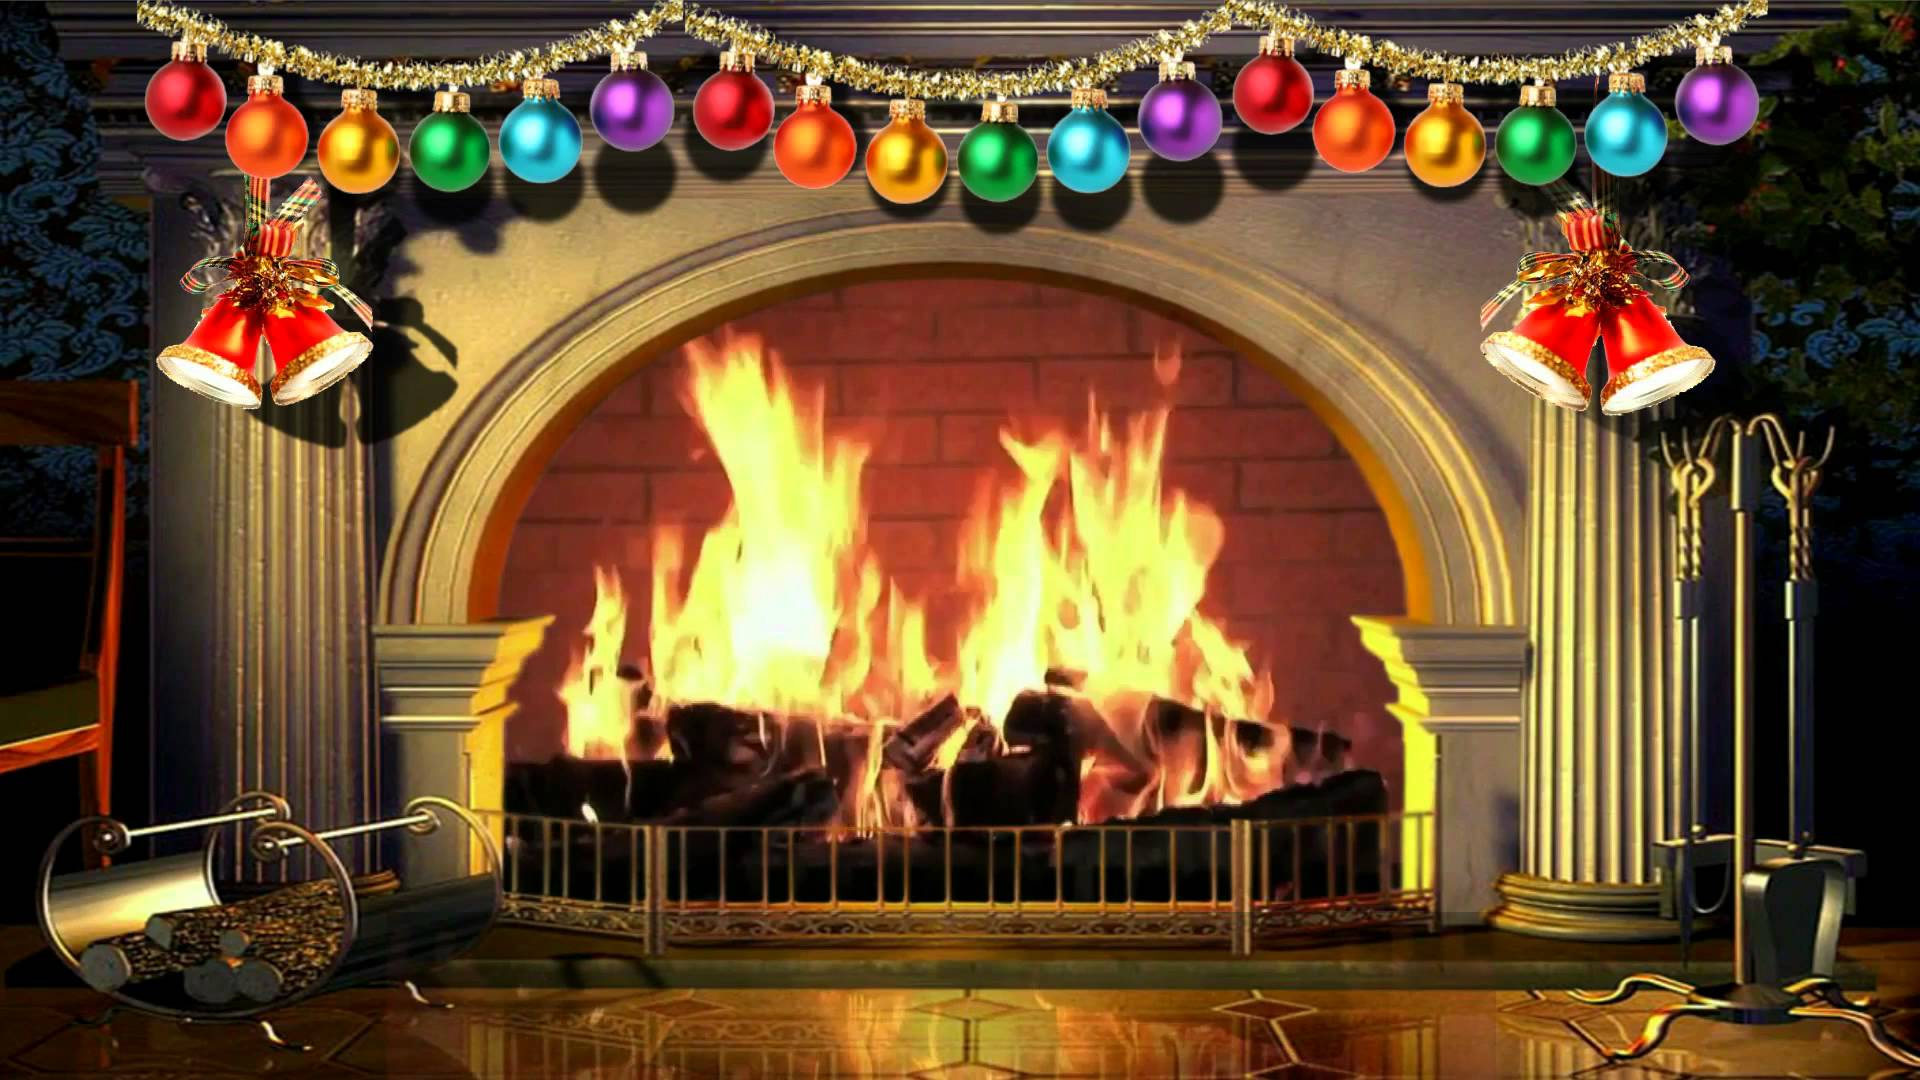 Christmas Decorated Fireplace Screensaver : Christmas fireplace backgrounds wallpaper cave